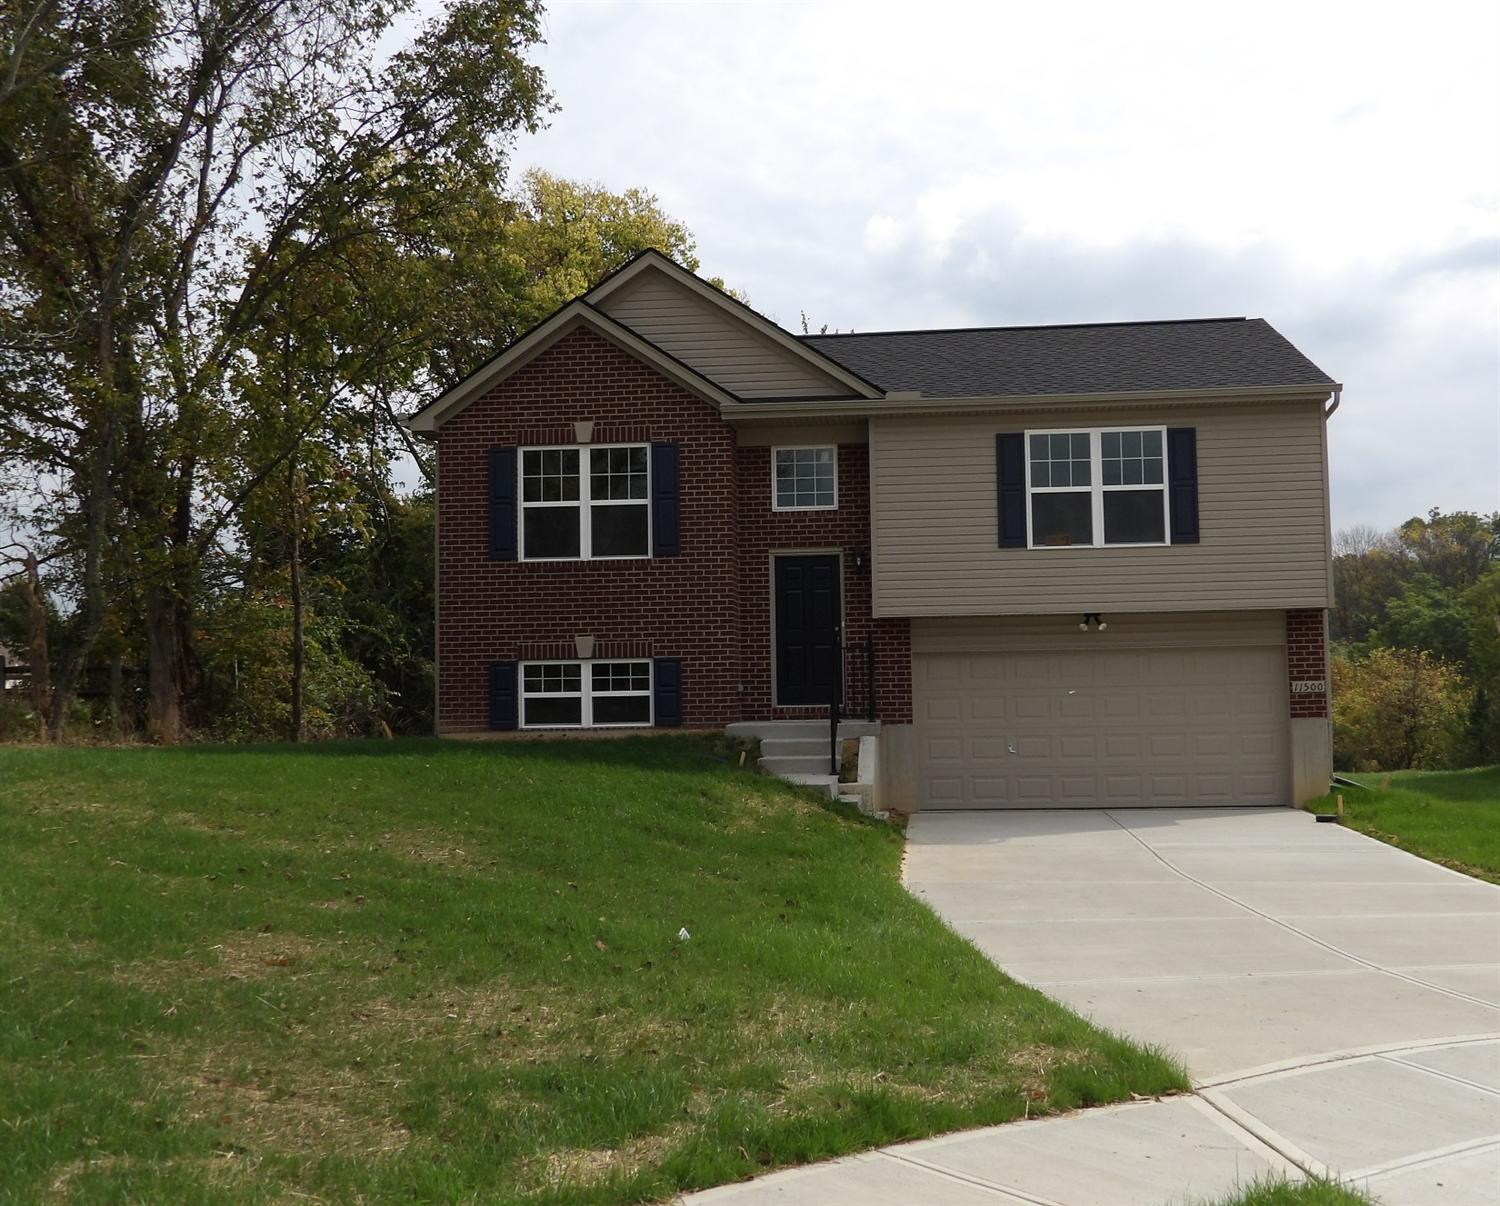 Photo 1 for 11500 Ridgetop Dr, 7RT Walton, KY 41091